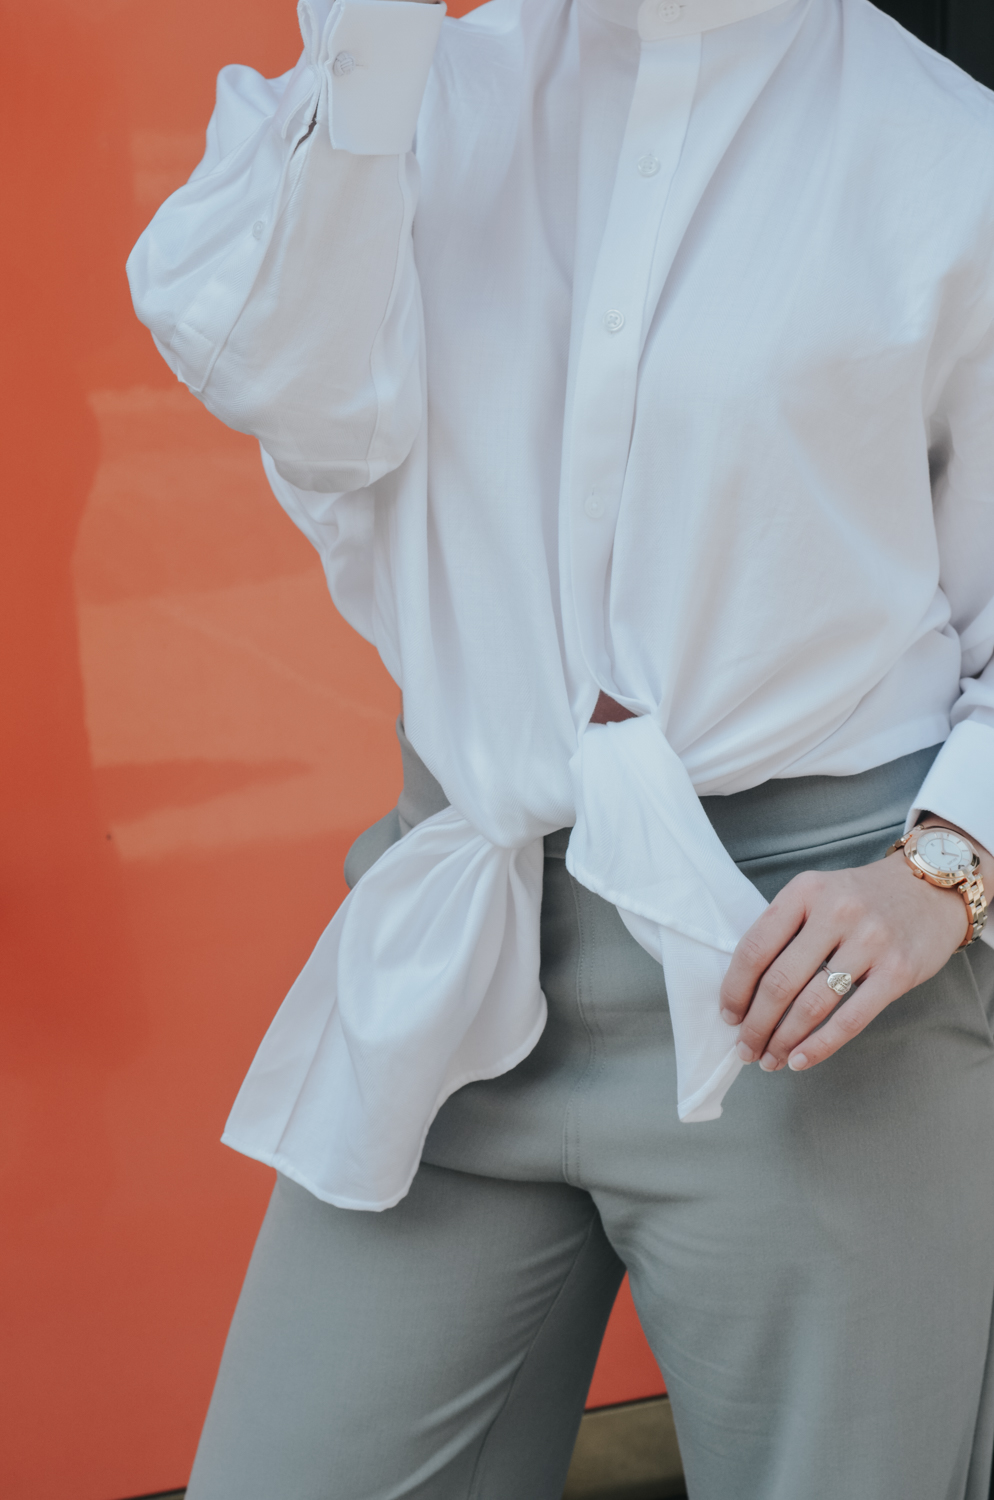 Narrow Arrow grey culottes and shirt | fall fashion trends, wide leg pants, trending, new york fashion week, street style